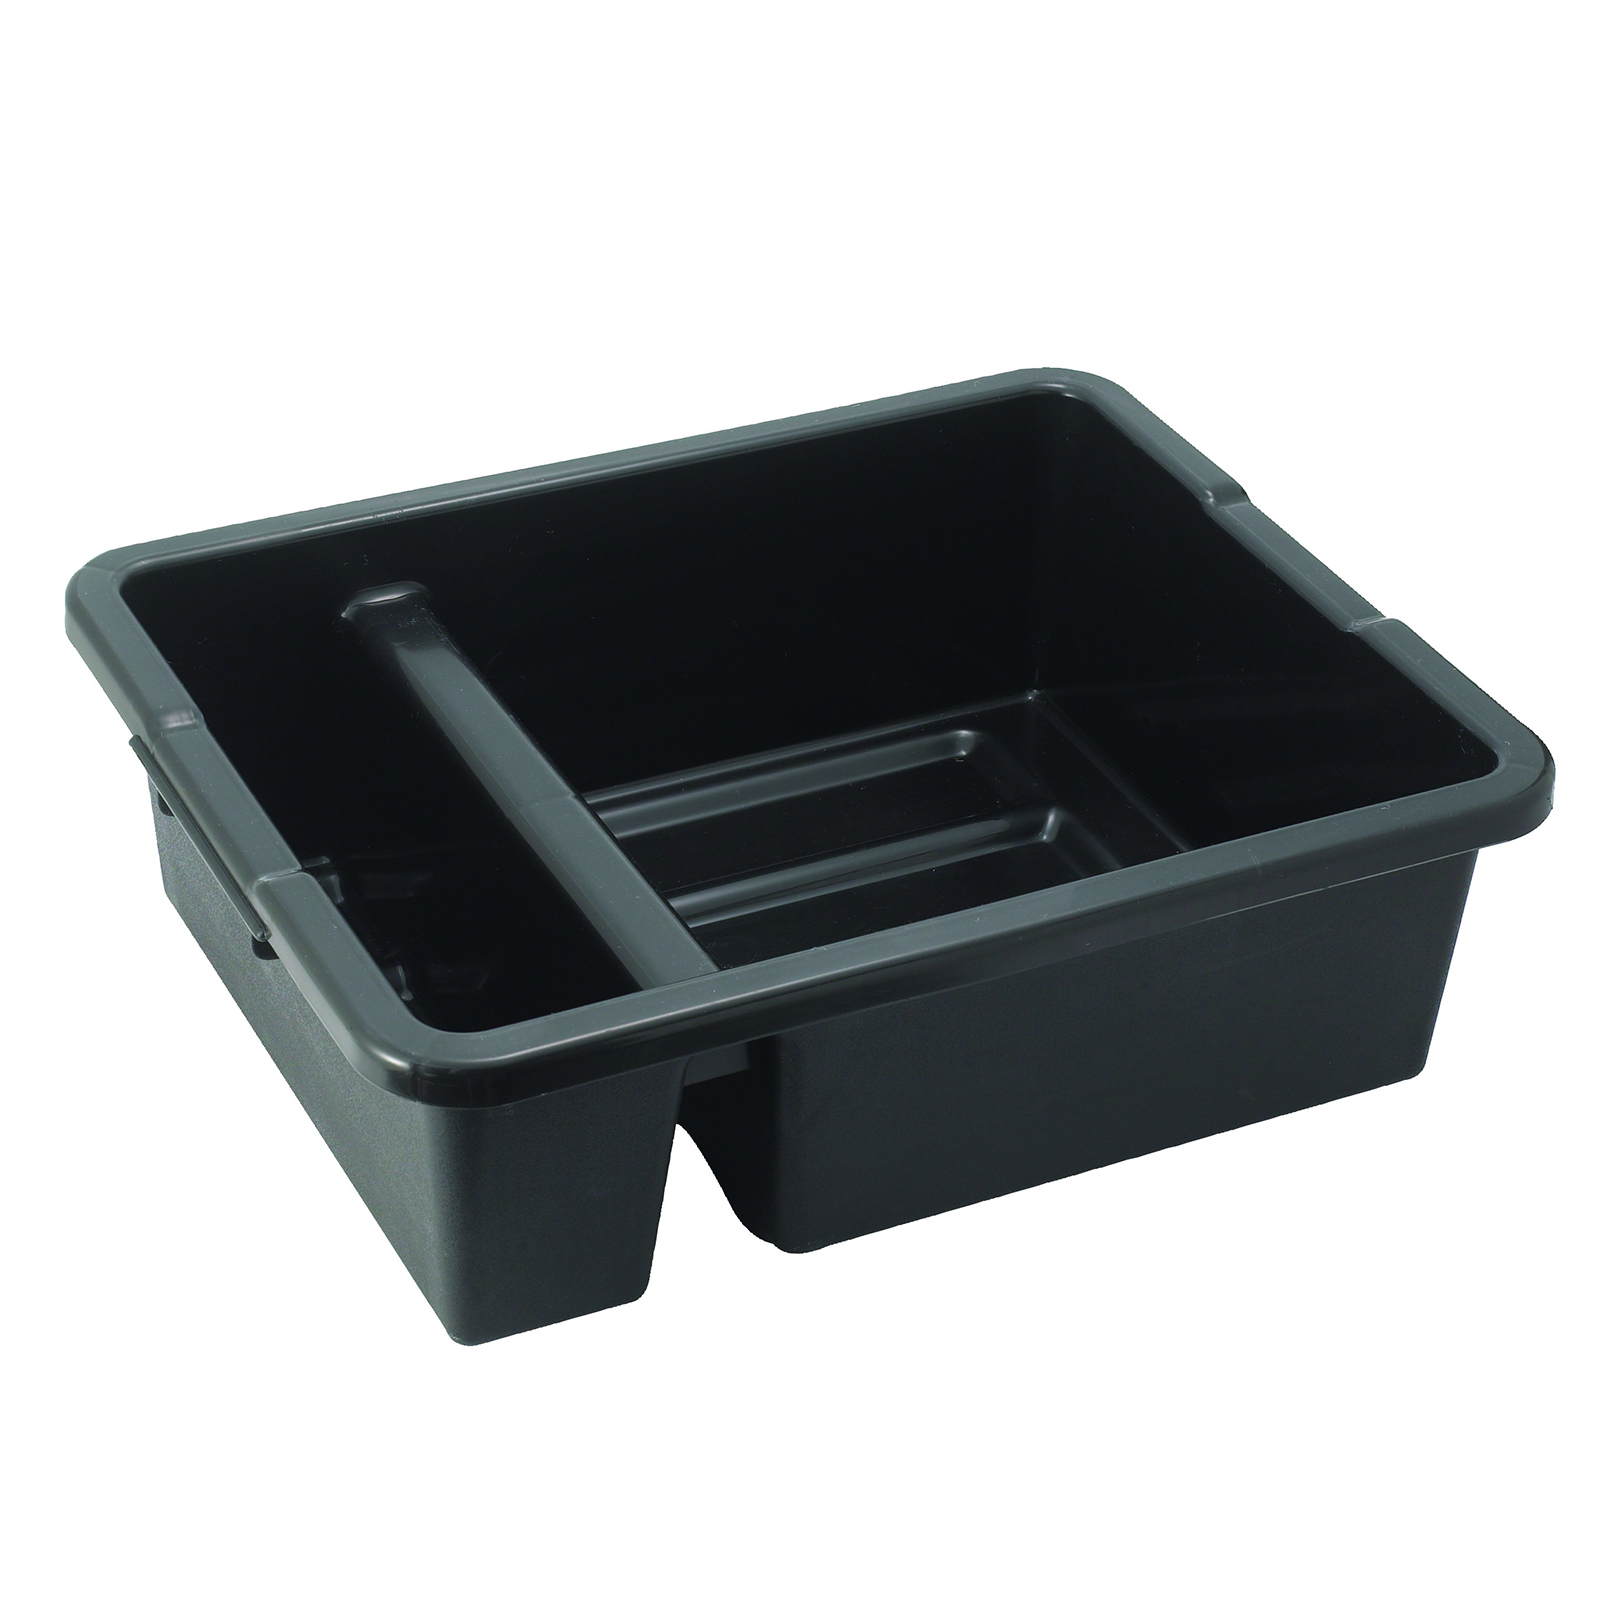 2950-55 Winco PLTC-7K bus box / tub